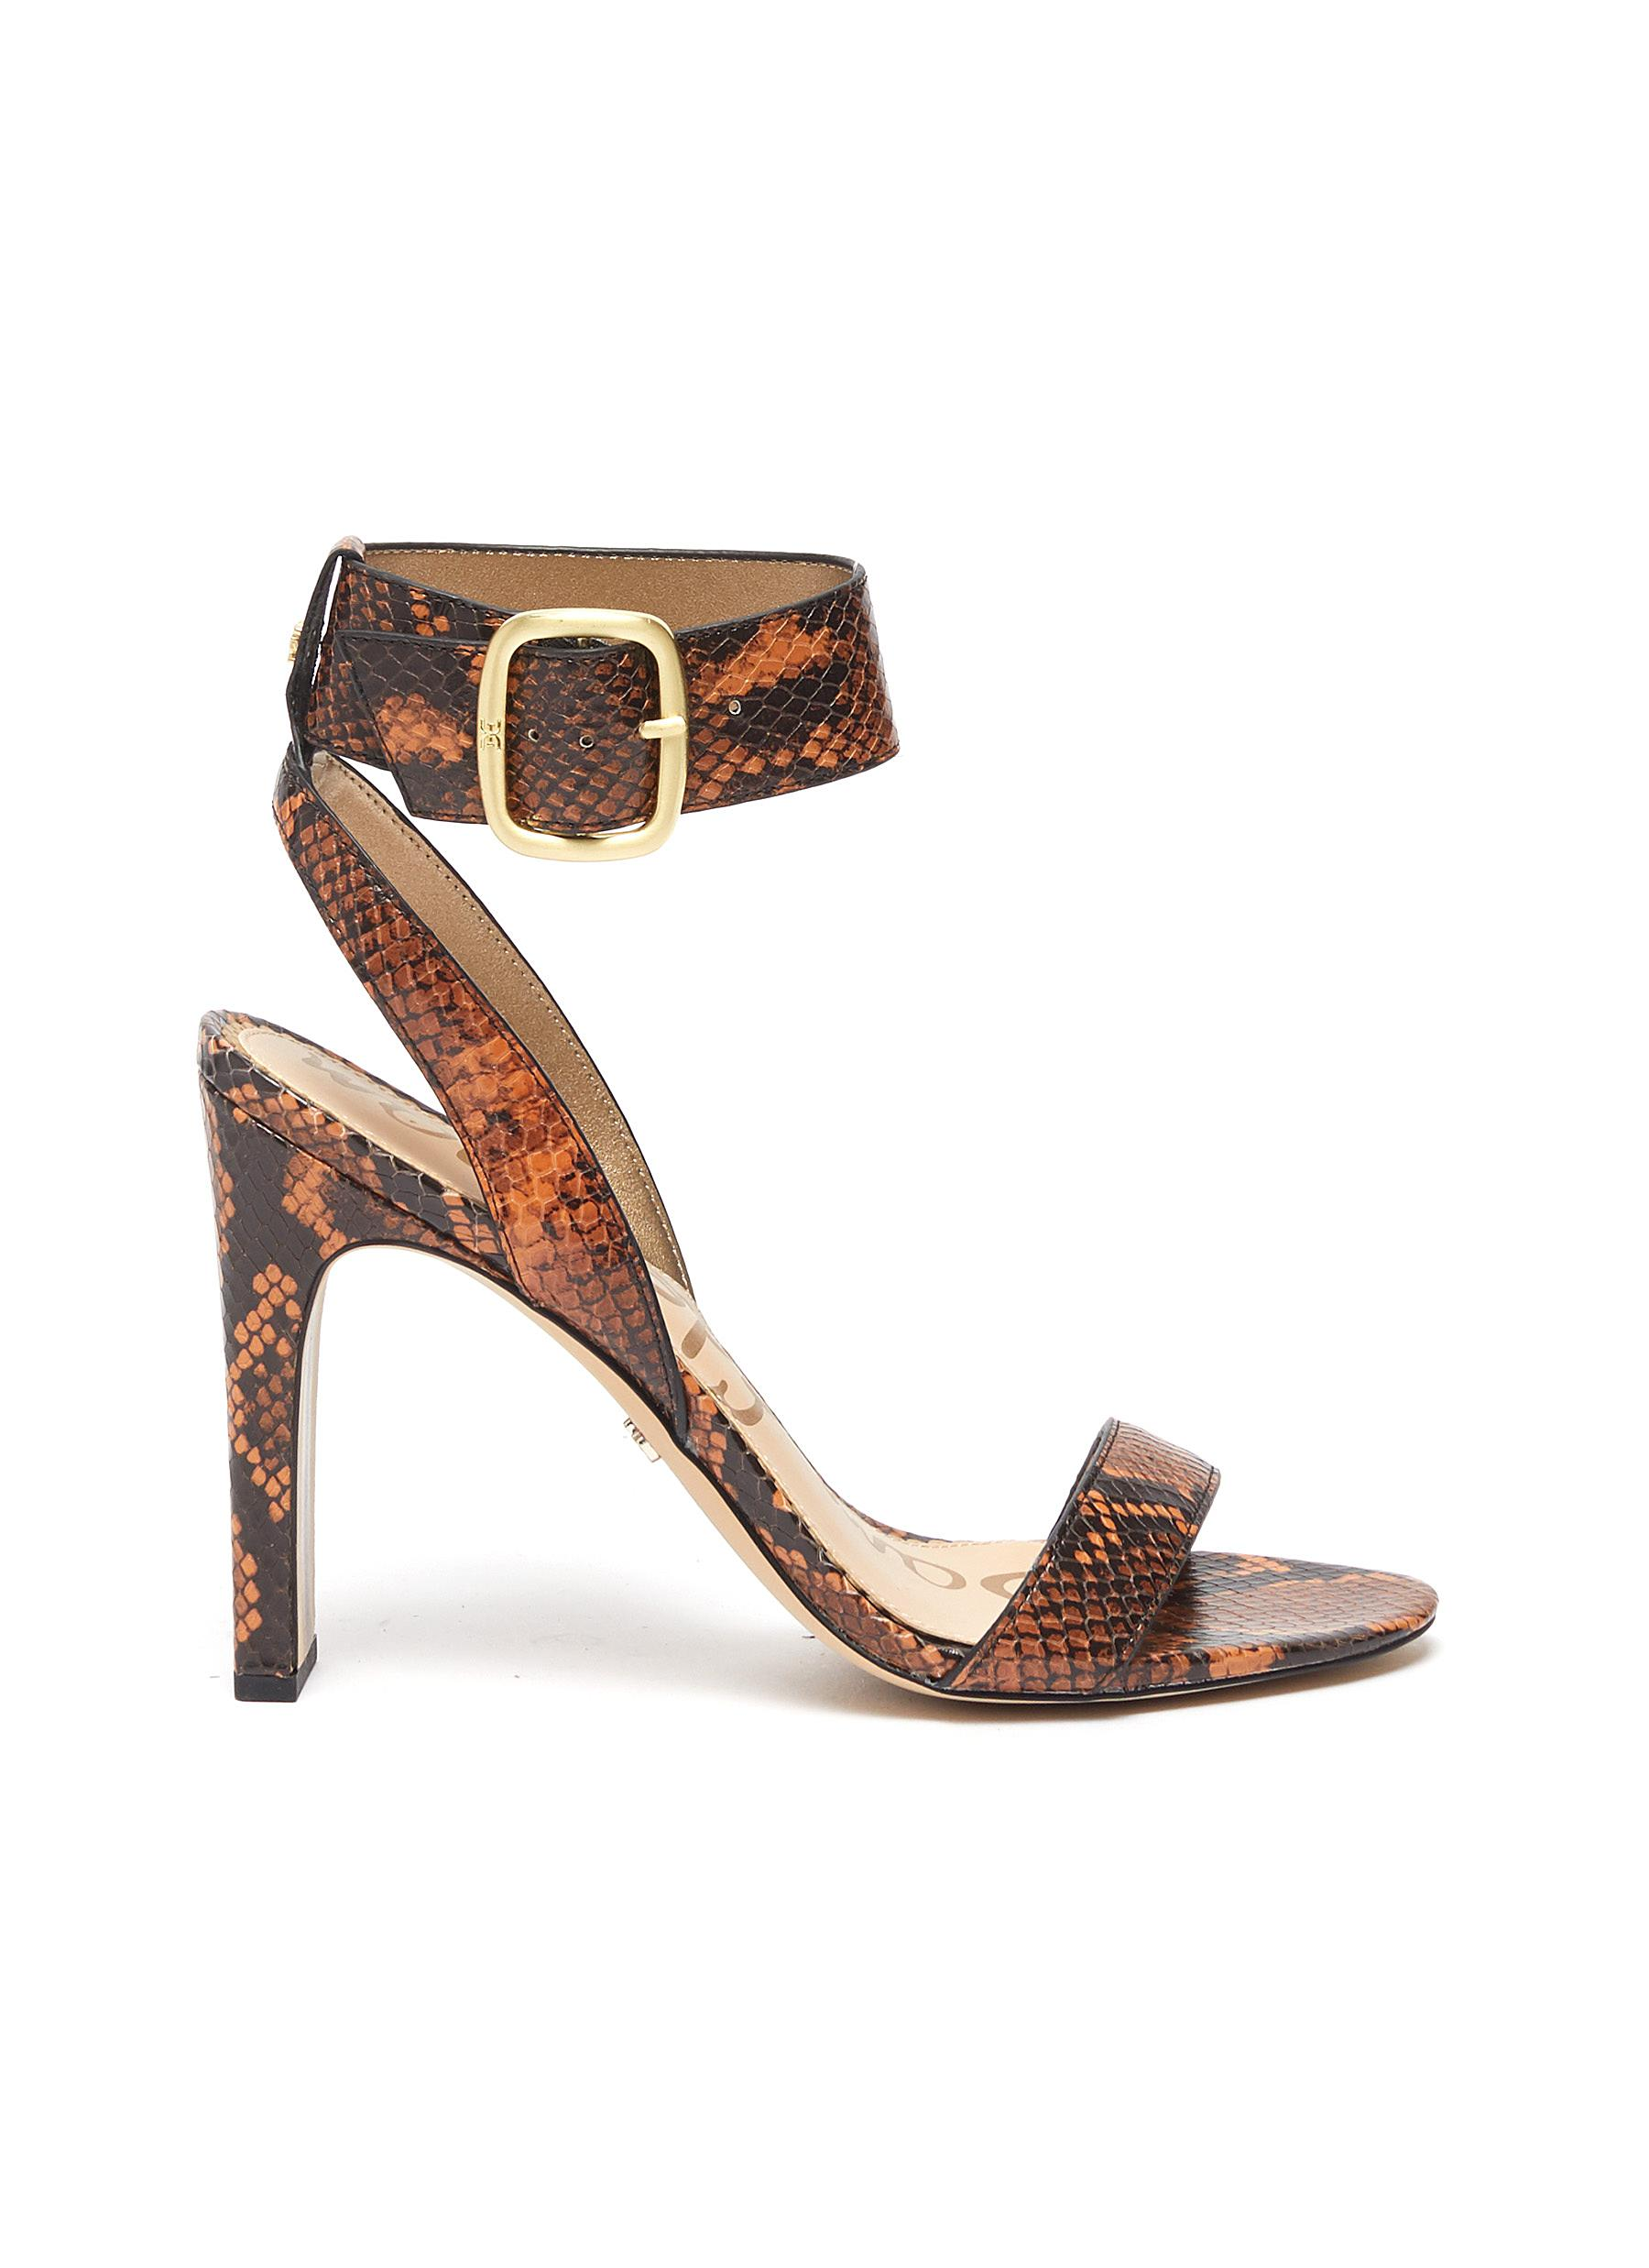 Yola ankle strap snake embossed leather sandals by Sam Edelman